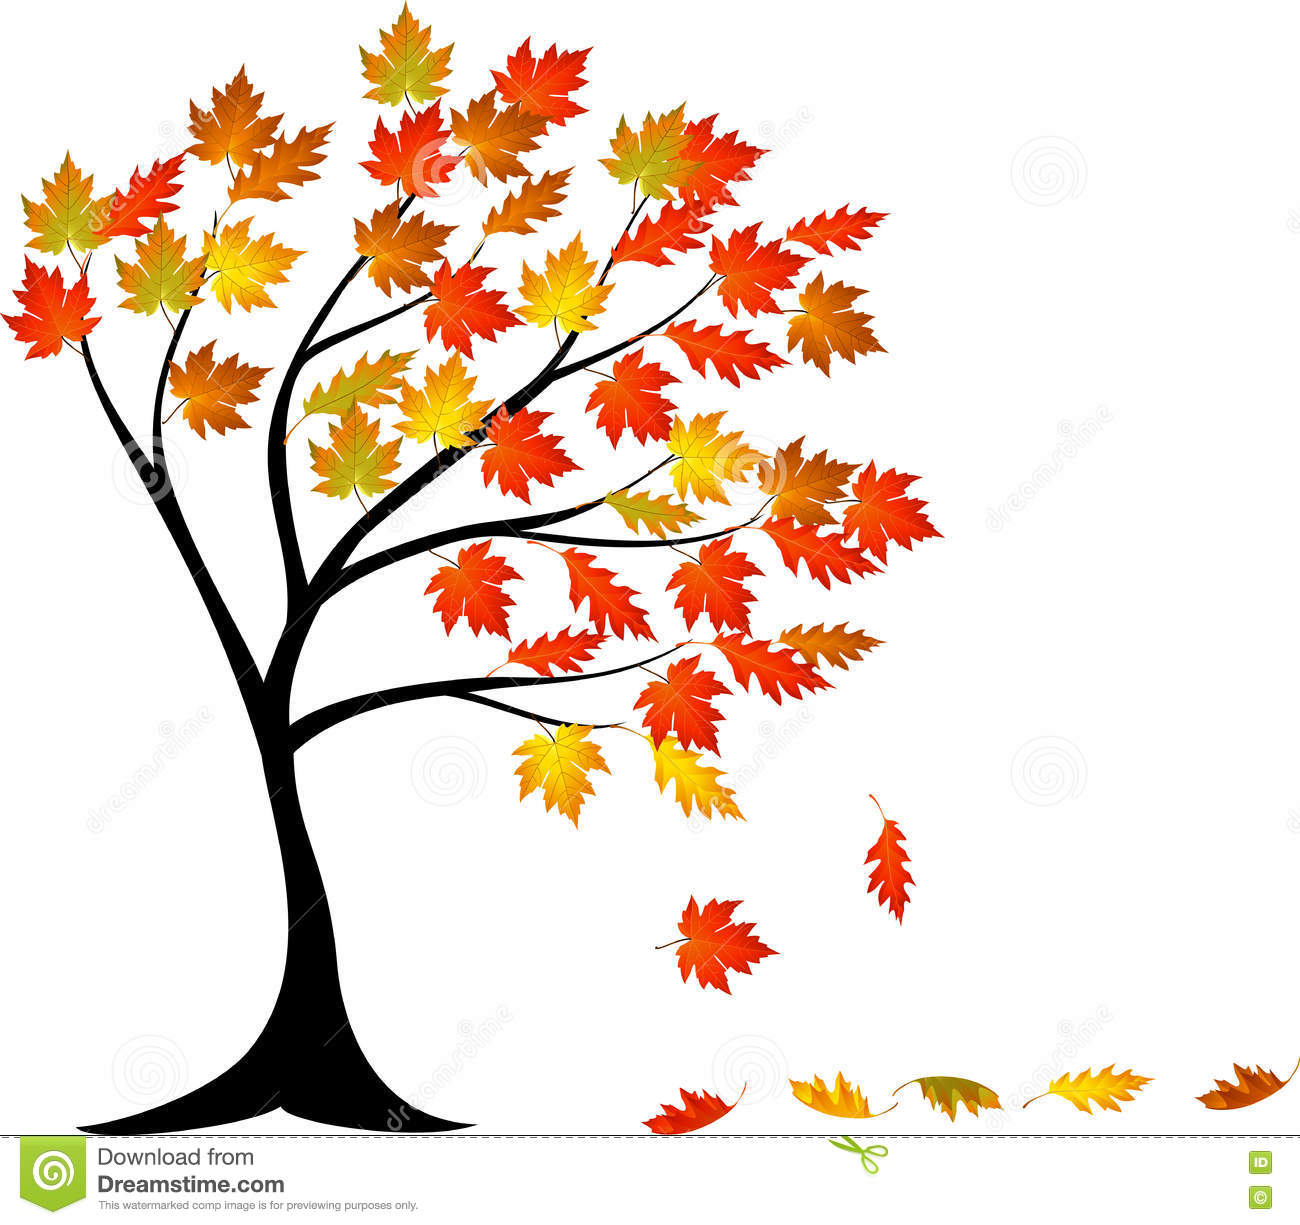 Autumn Tree Cartoon Stock Vector - Image: 77943860 Cartoon Fall Tree With Branches